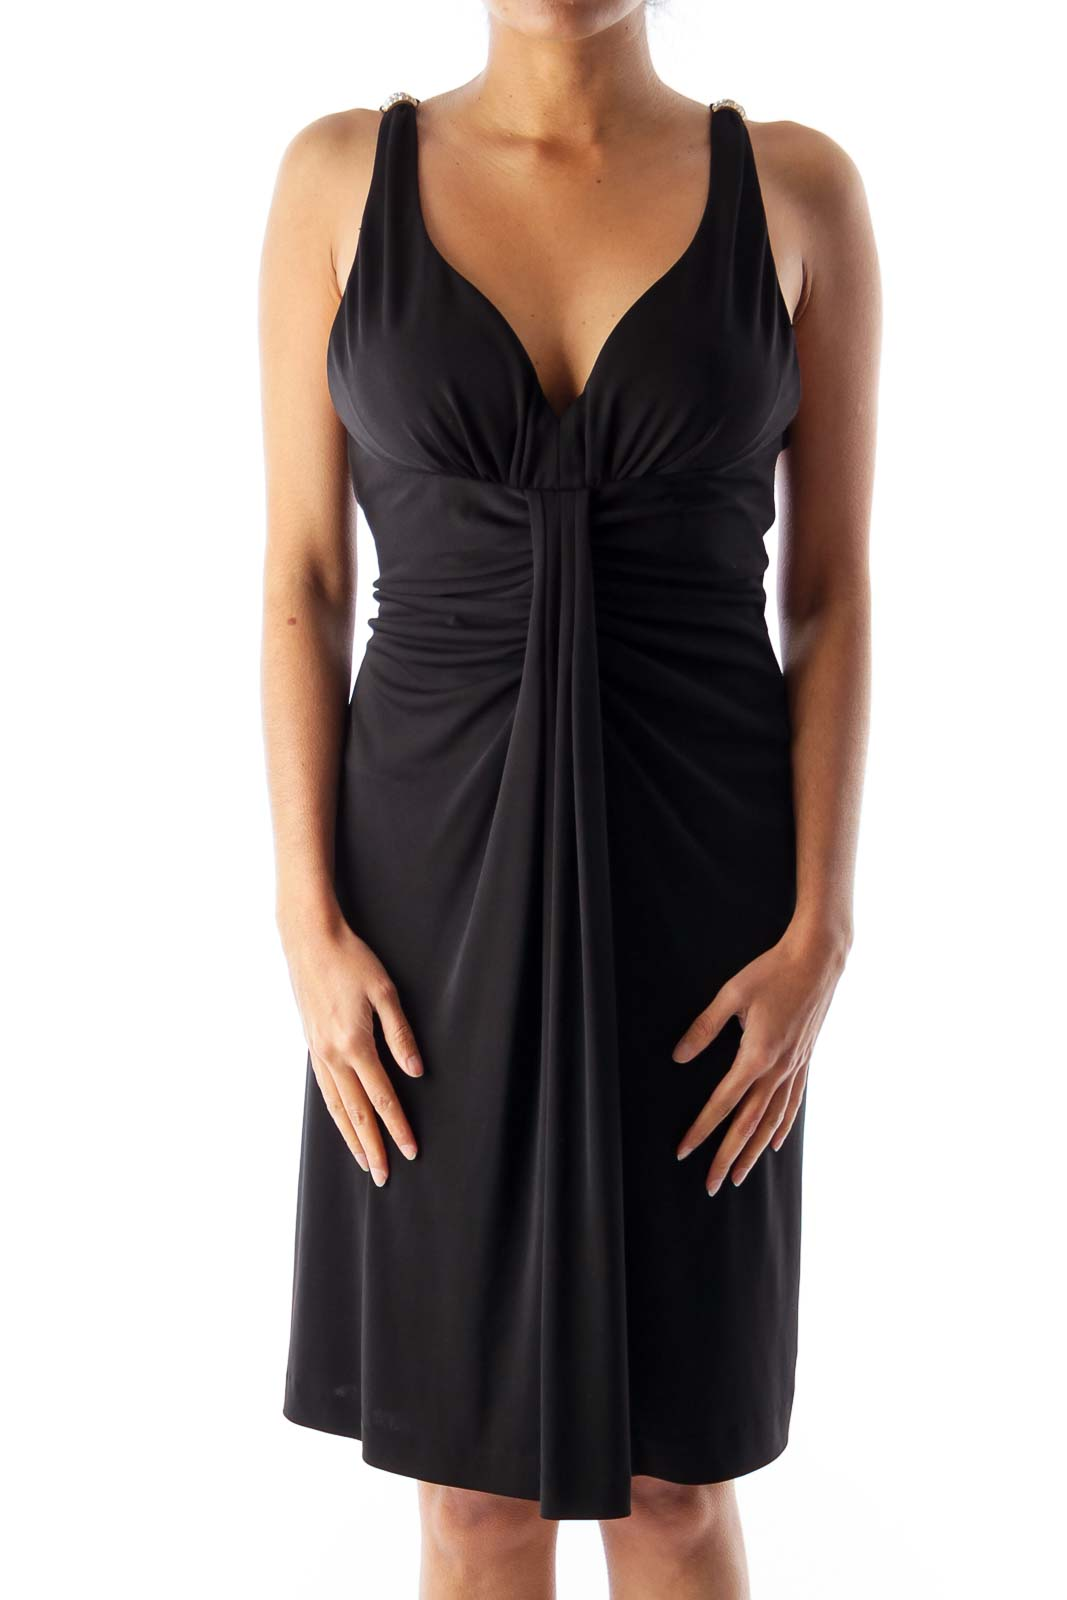 Black Shoulder Rhinestone Dress